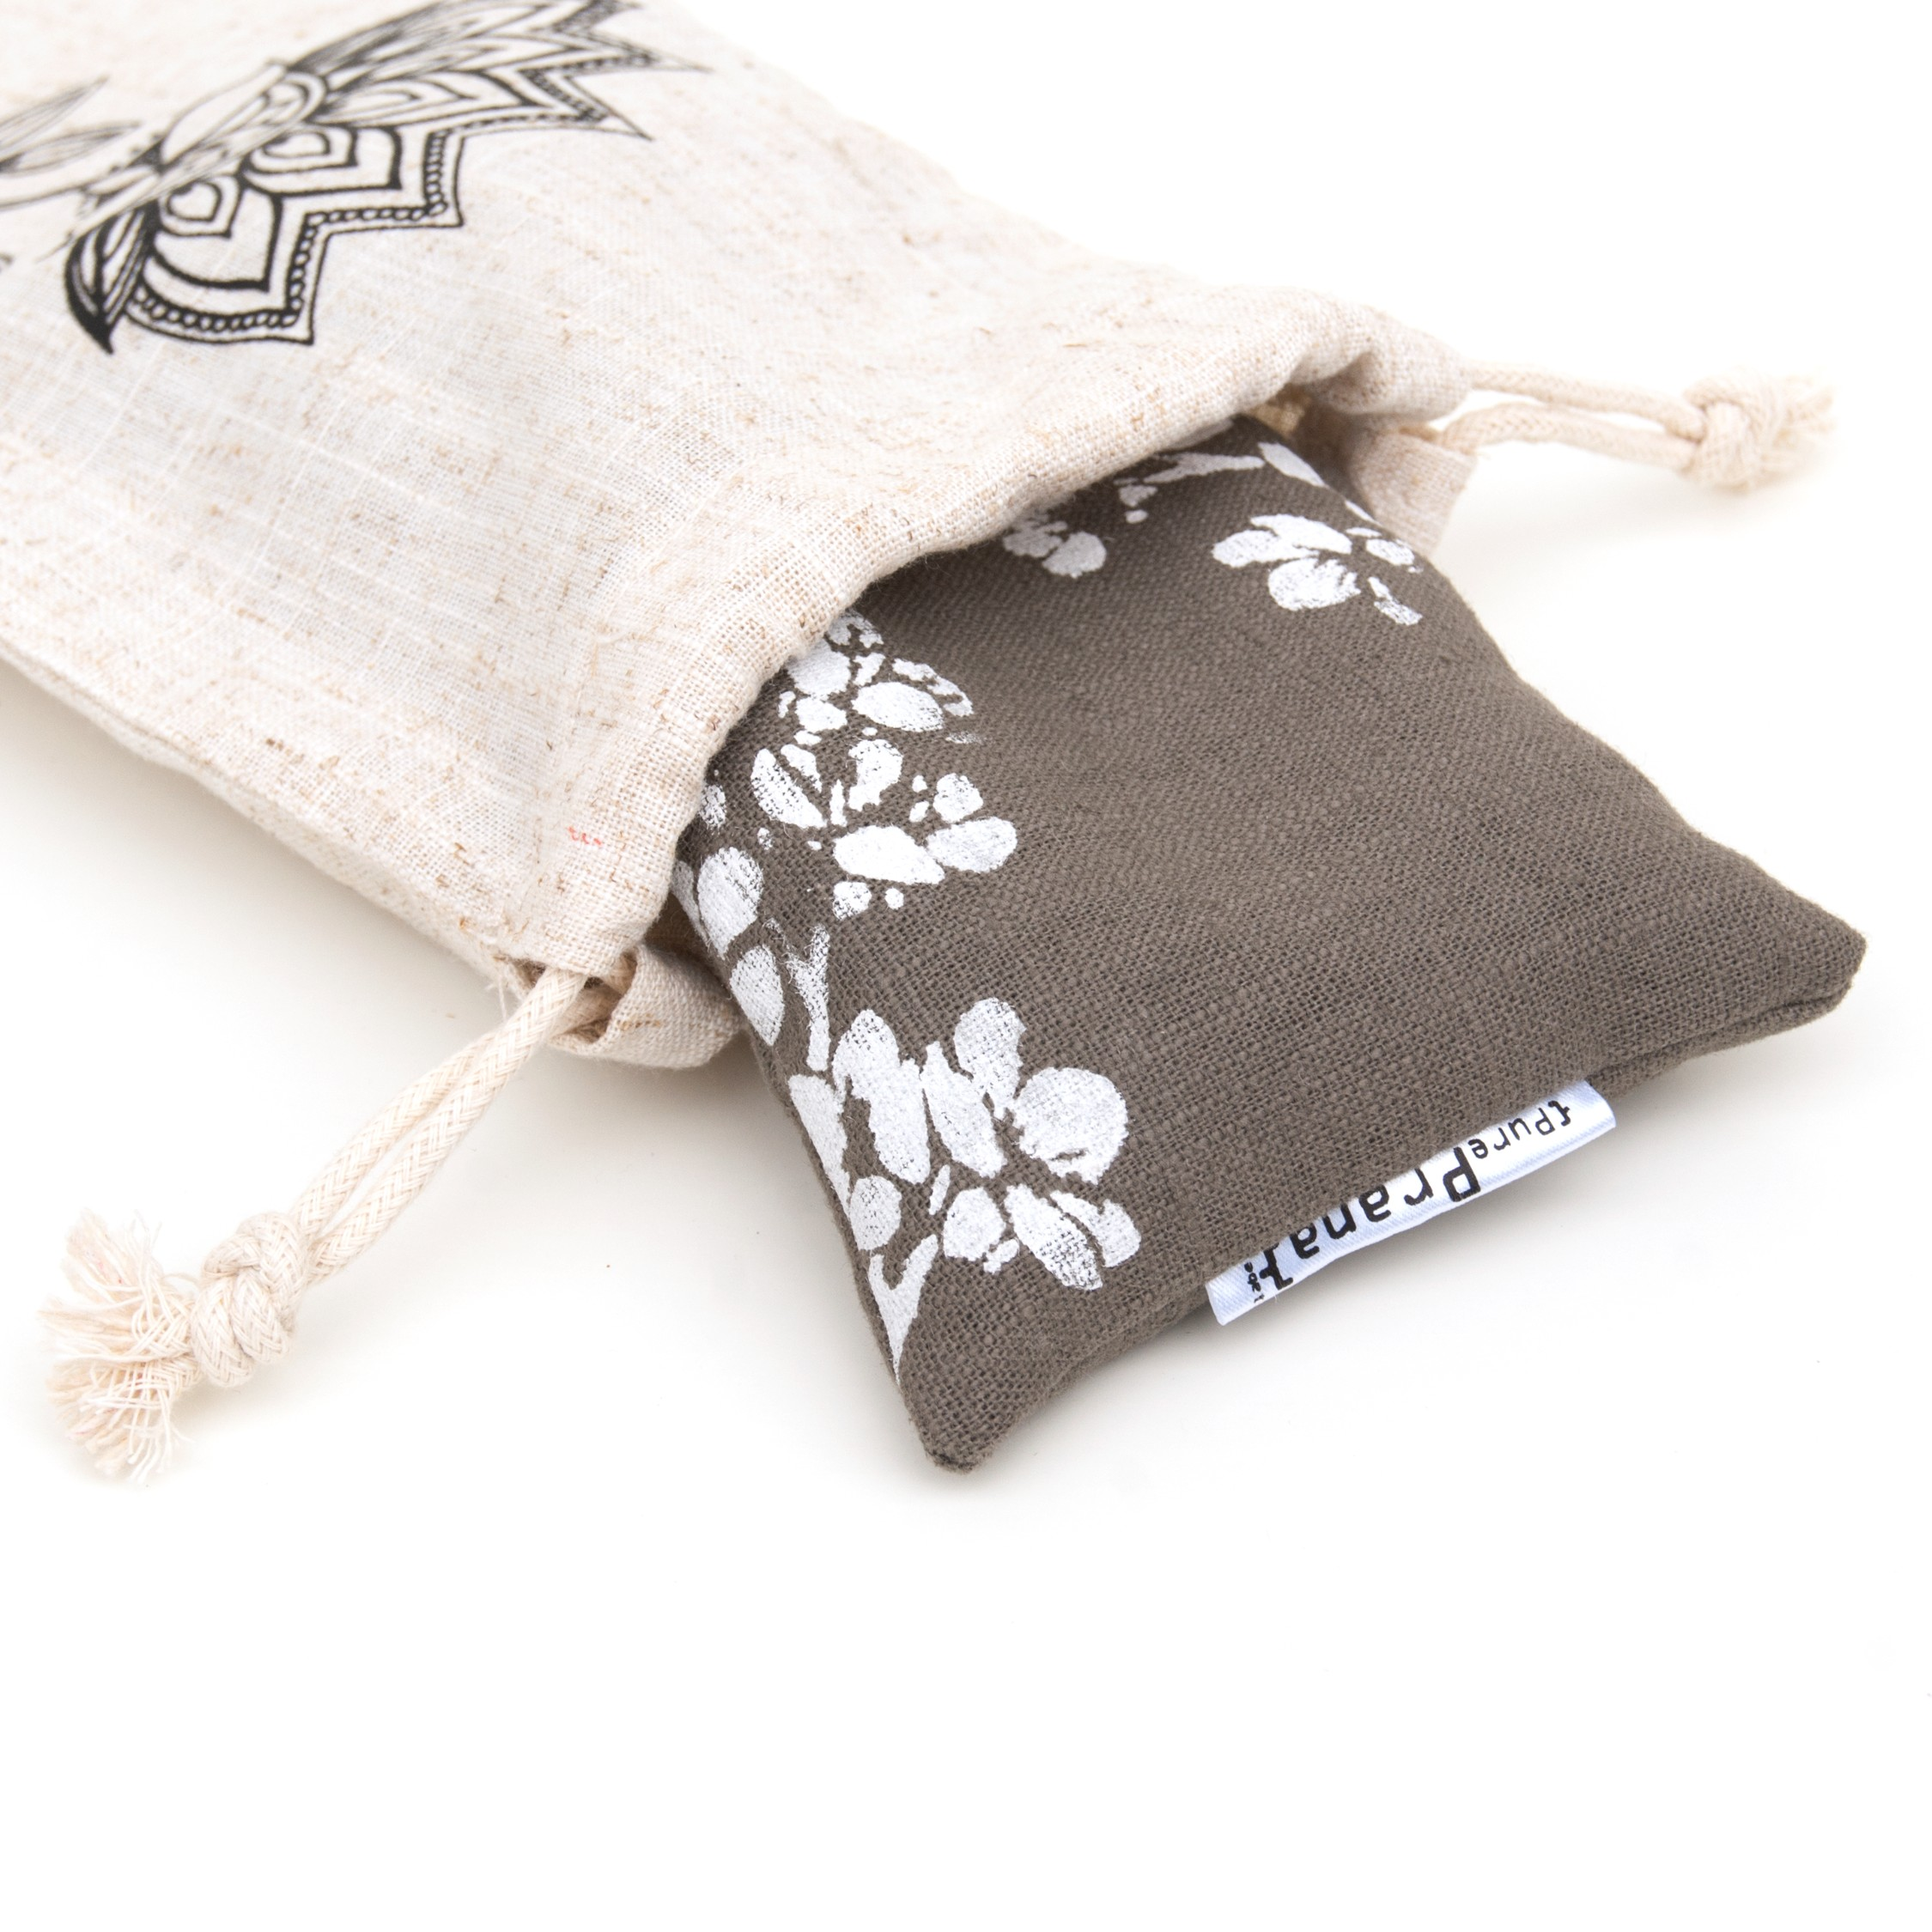 Your eye pillow comes in a lovely pouch to keep it dustfree and clean